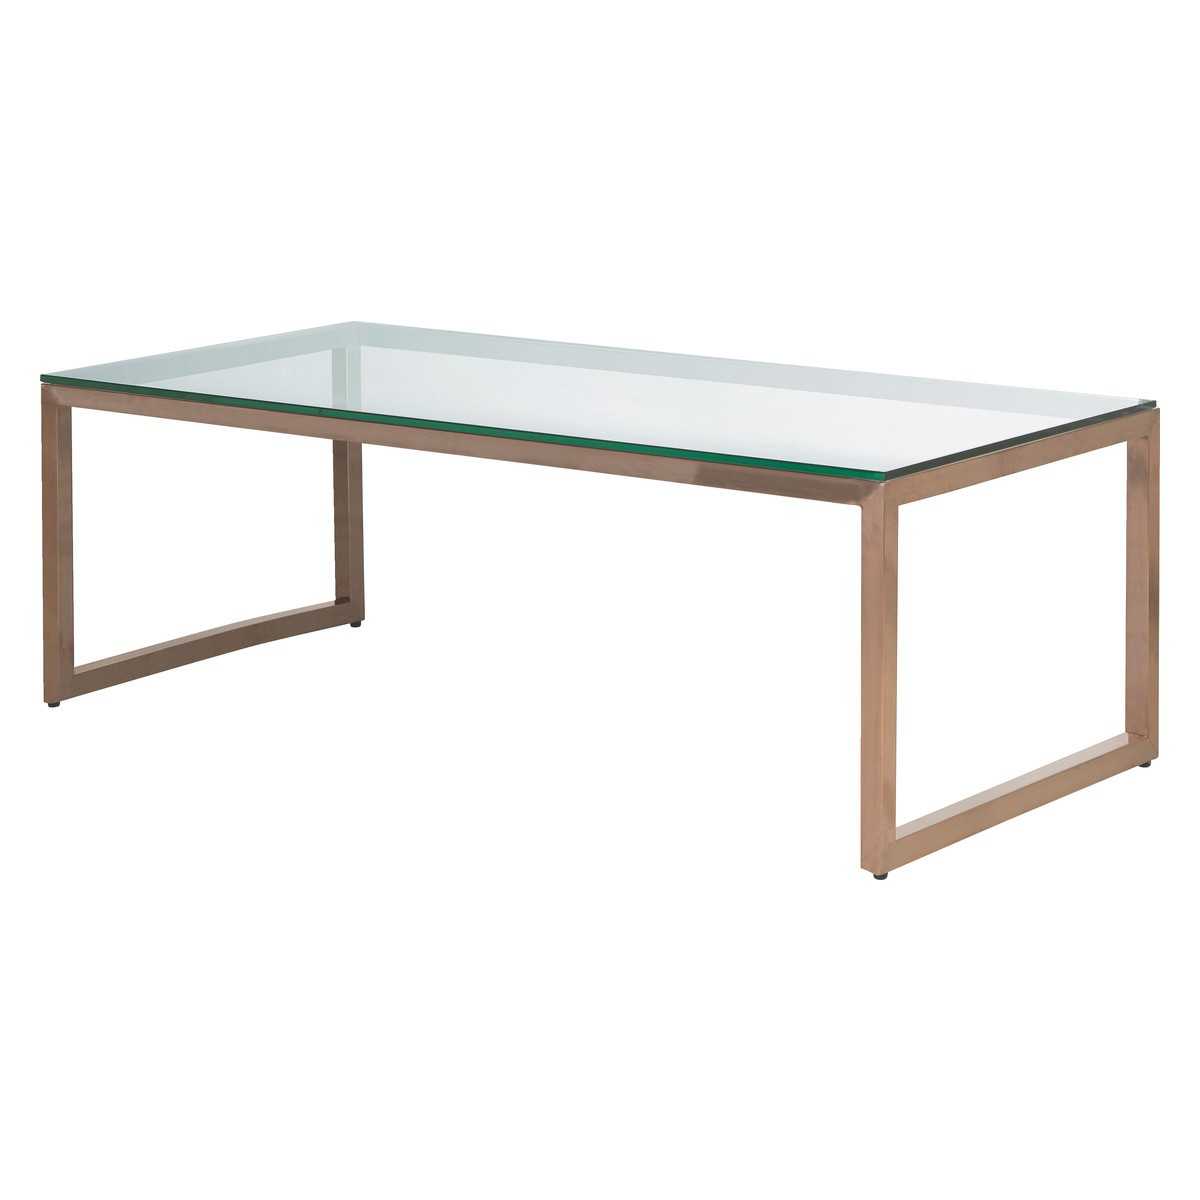 Buy Now At Habitat Uk Pertaining To Rectangular Brass Finish And Glass Coffee Tables (View 10 of 20)